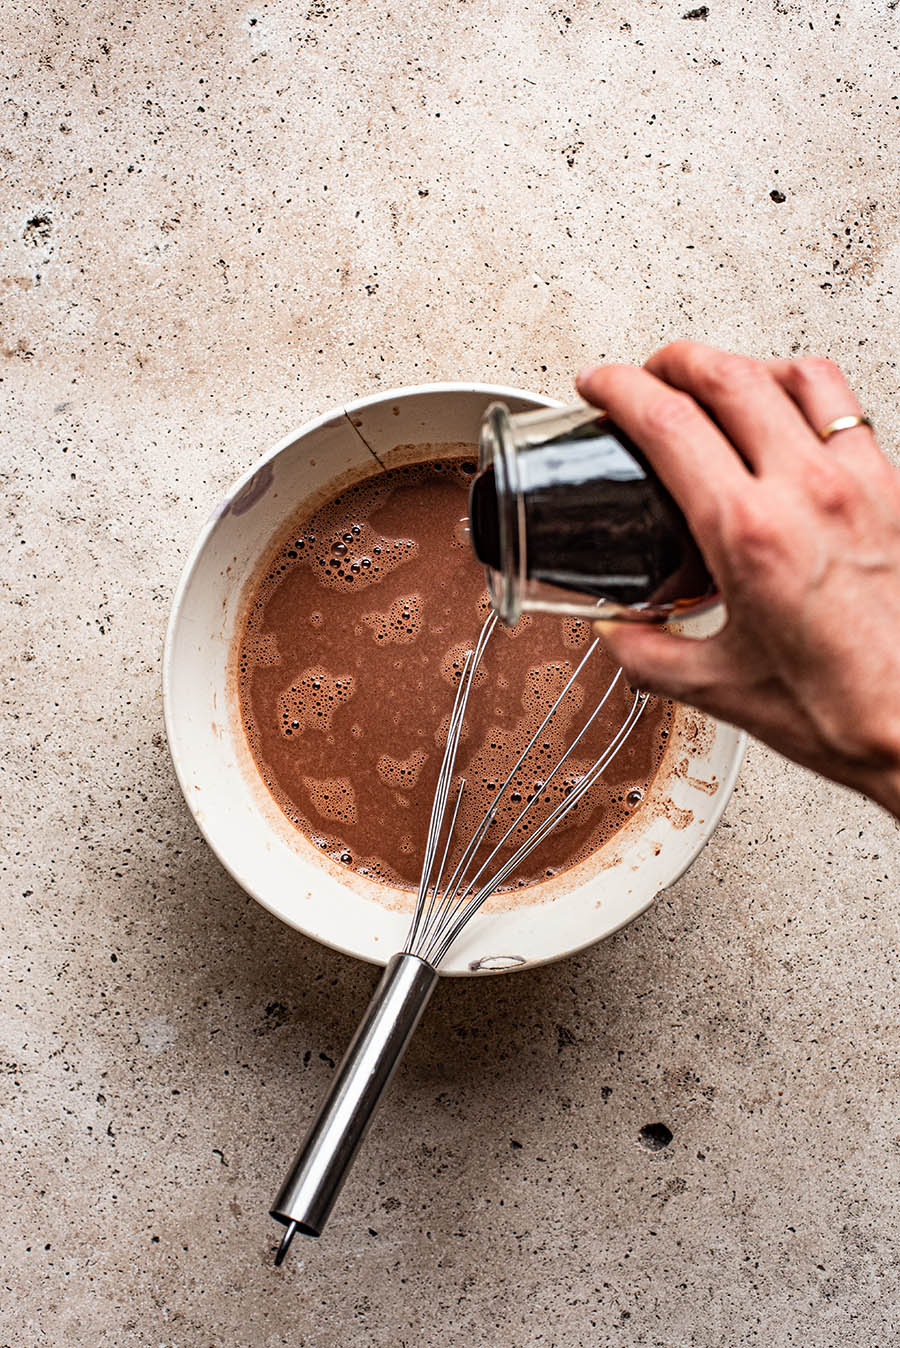 Syrup being poured into the ganache.